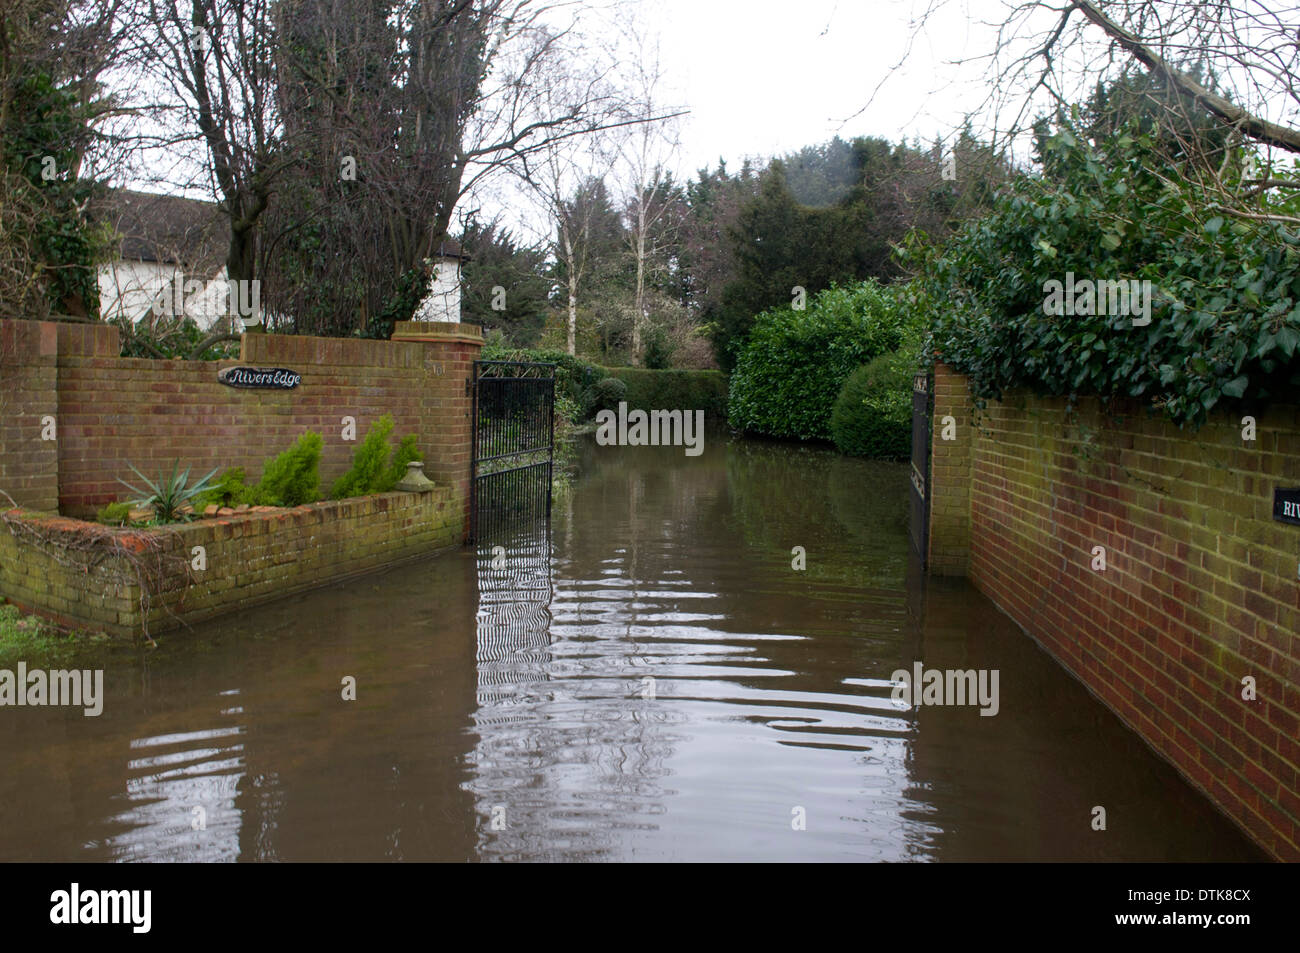 Flooded residential area and park in Staines. - Stock Image